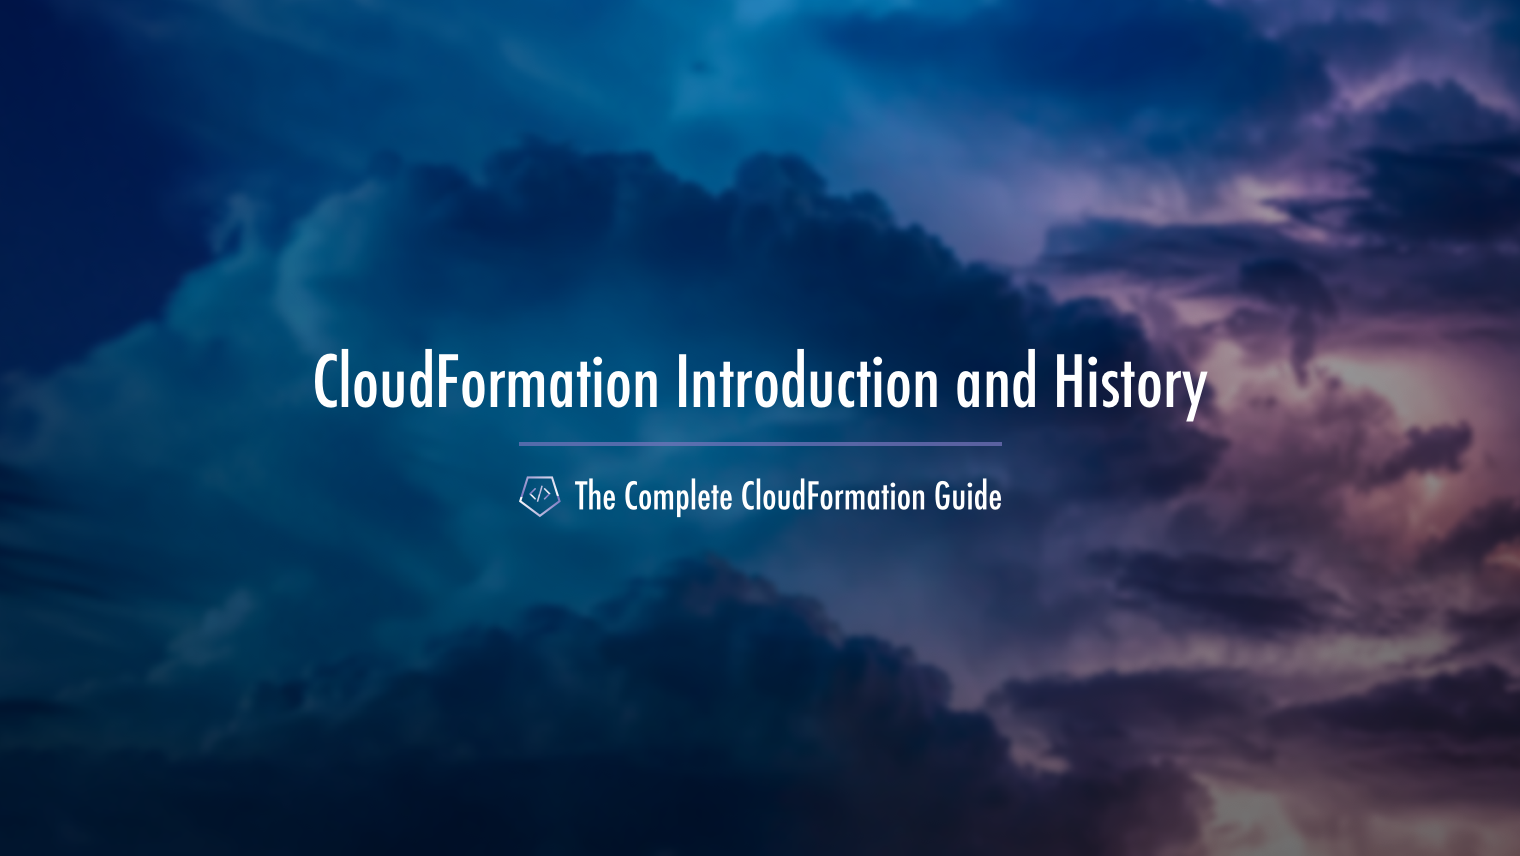 The Complete CloudFormation Guide An Introduction to and History of CloudFormation